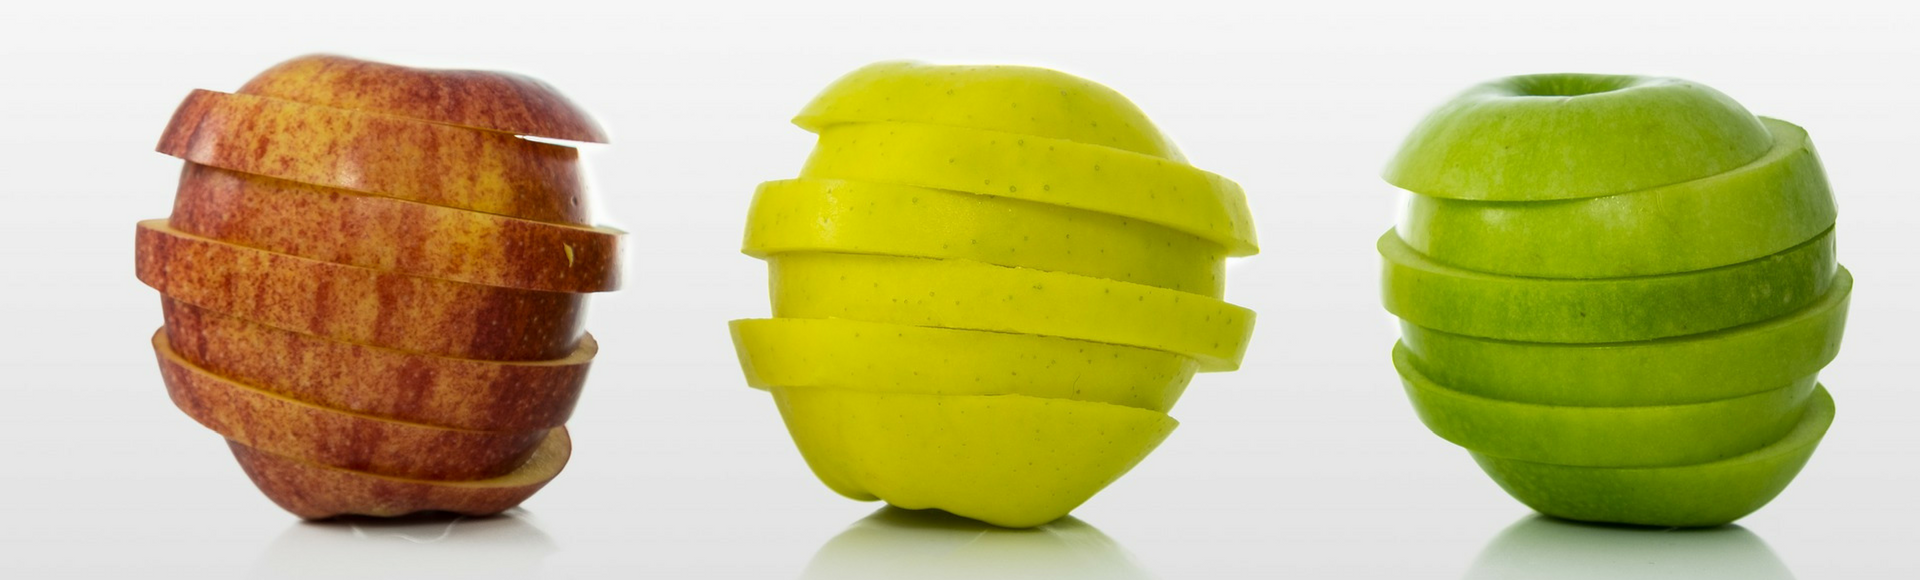 Three brightly colored apples sliced and spinning against white background to represent superfoods that are nutritious and help bosses and employees be at their most productive.